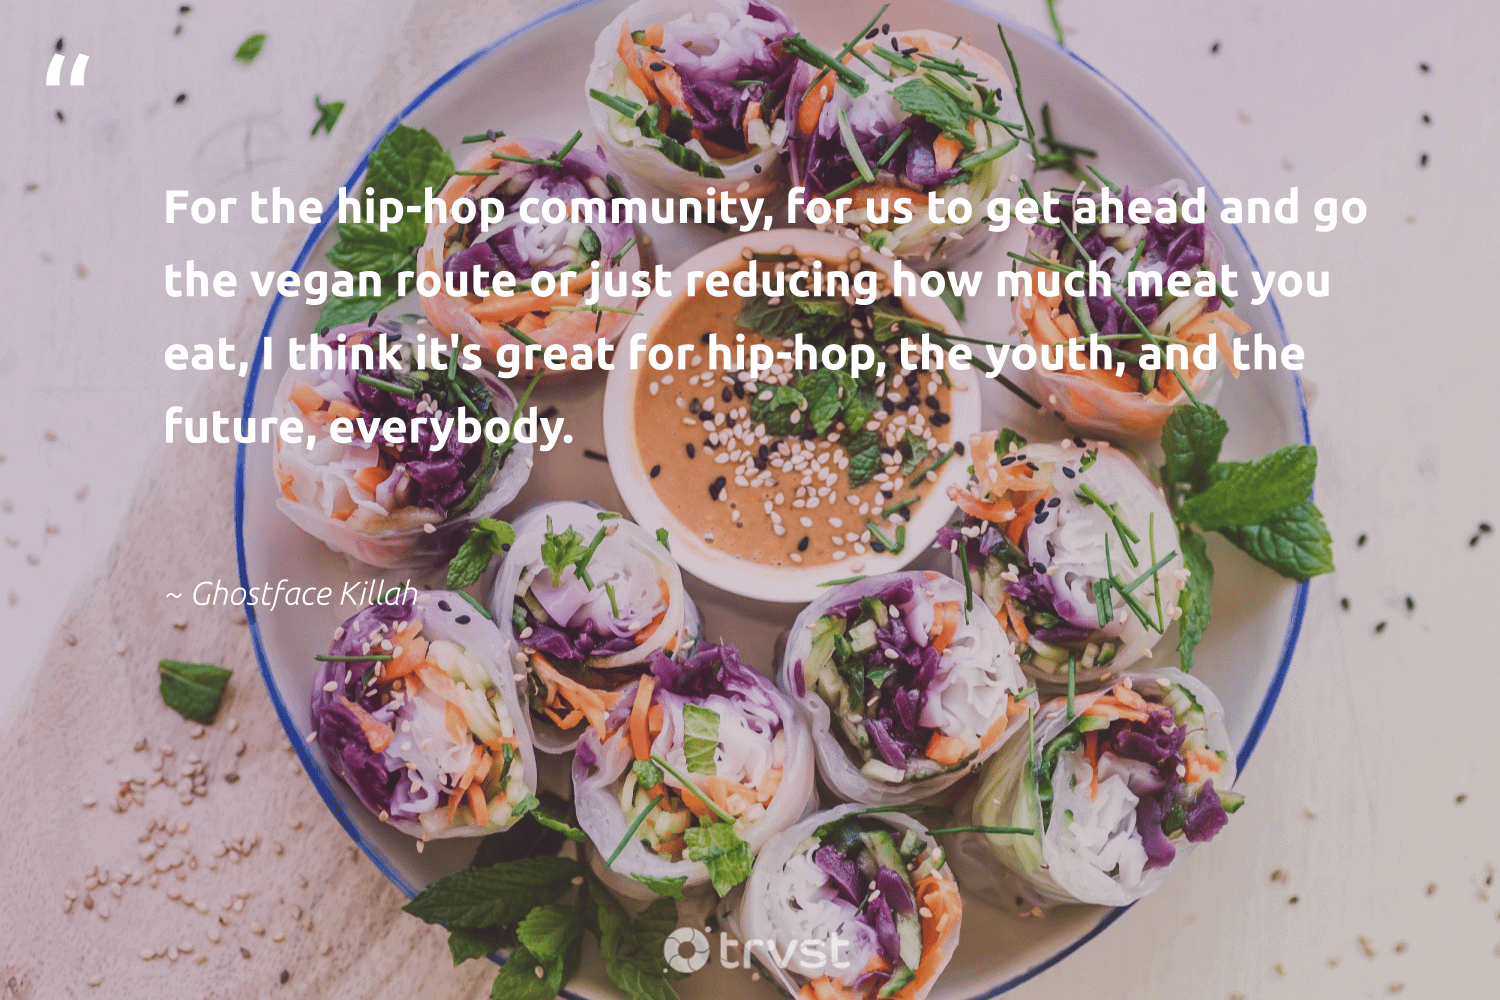 """""""For the hip-hop community, for us to get ahead and go the vegan route or just reducing how much meat you eat, I think it's great for hip-hop, the youth, and the future, everybody.""""  - Ghostface Killah #trvst #quotes #vegan #govegan #sustainability #fashion #dotherightthing #veganlife #gogreen #bethechange #changetheworld #vegetarian"""